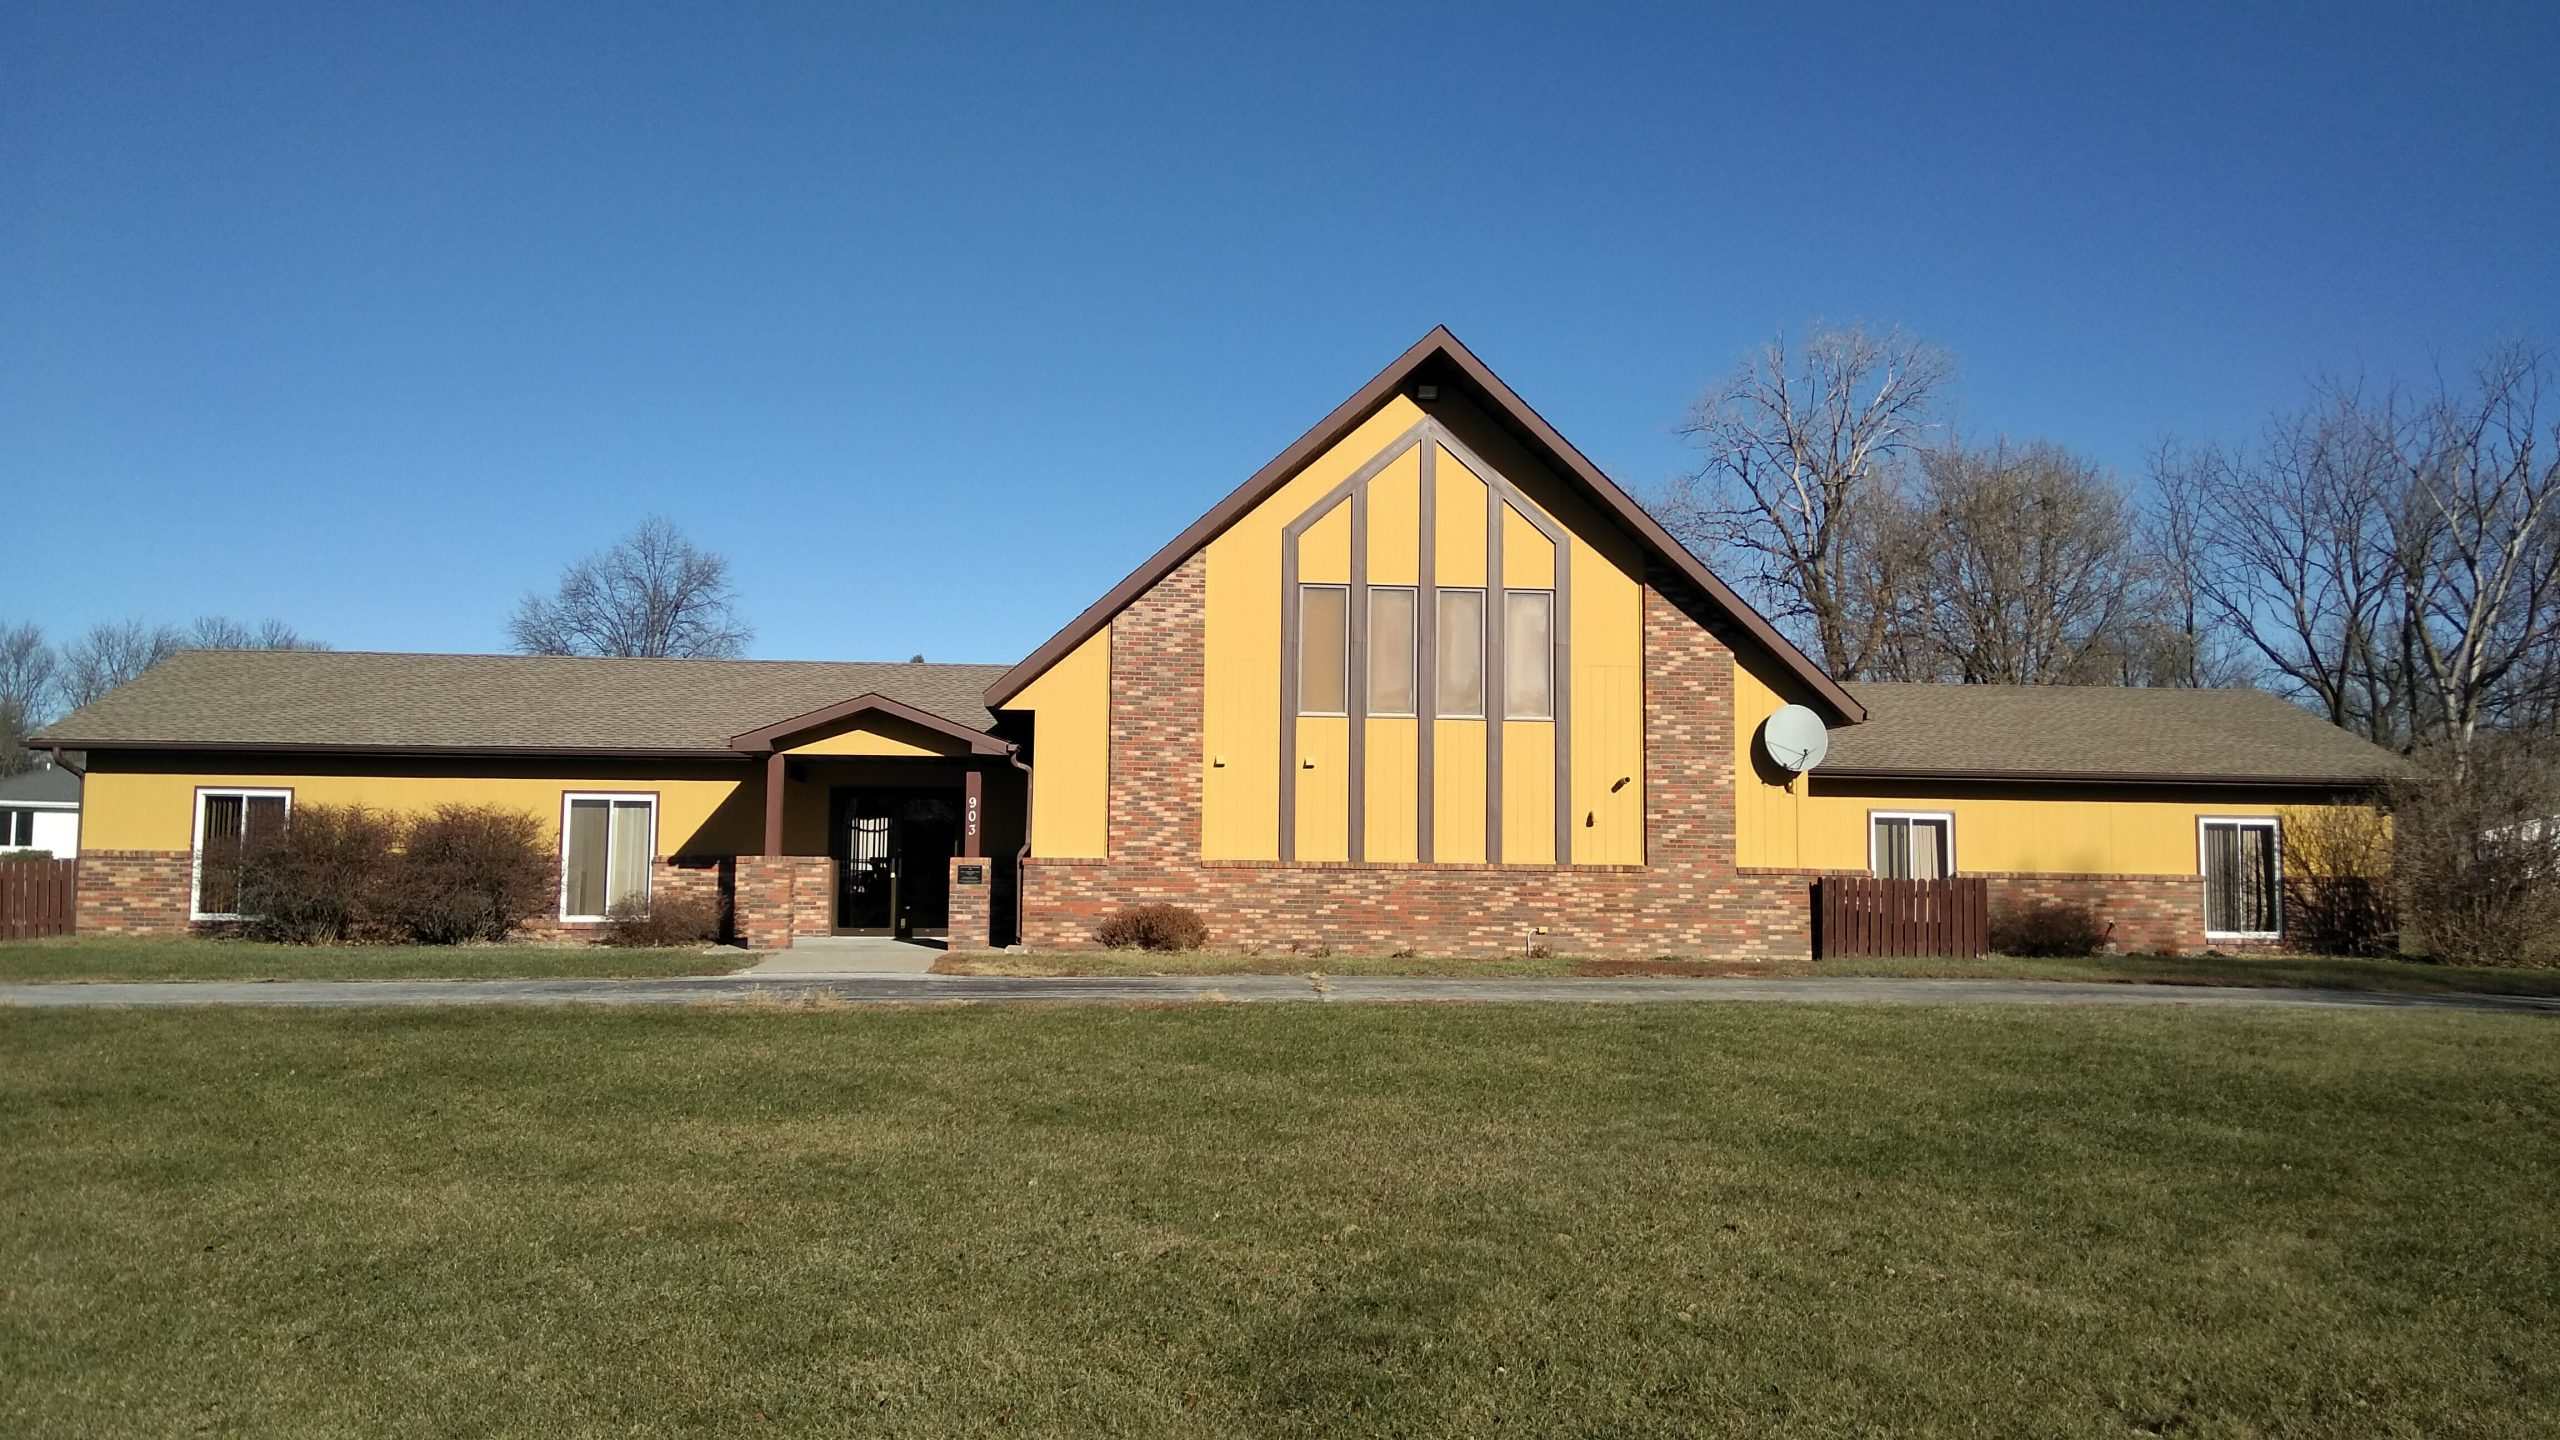 Winterset Adventist Church